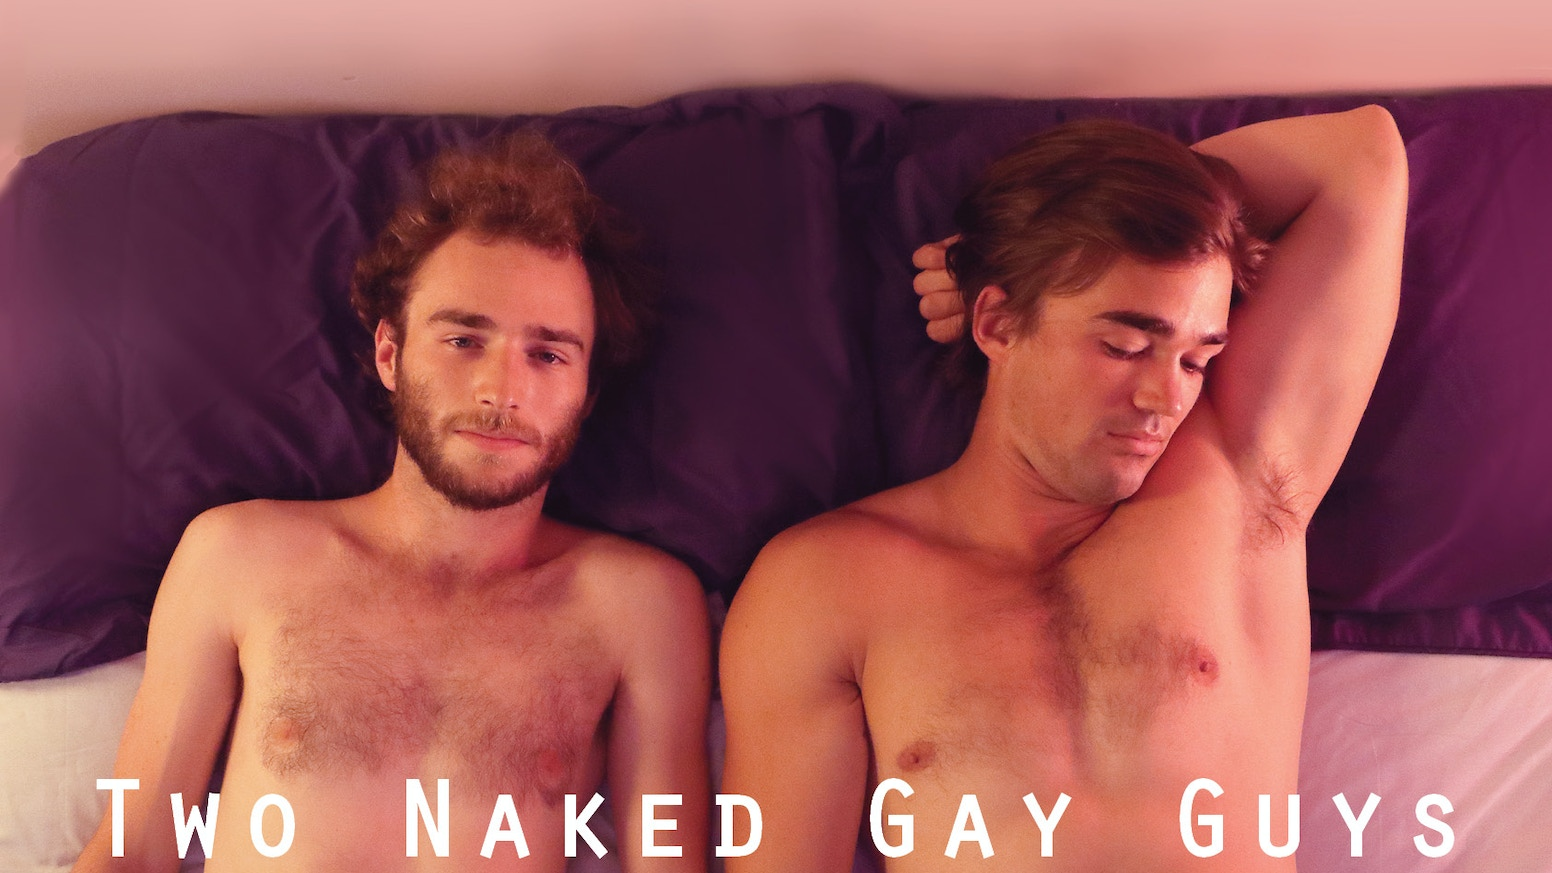 A comedy drama webseries about a casual hook up between two guys that leads to something more than they or their friends bargained for.